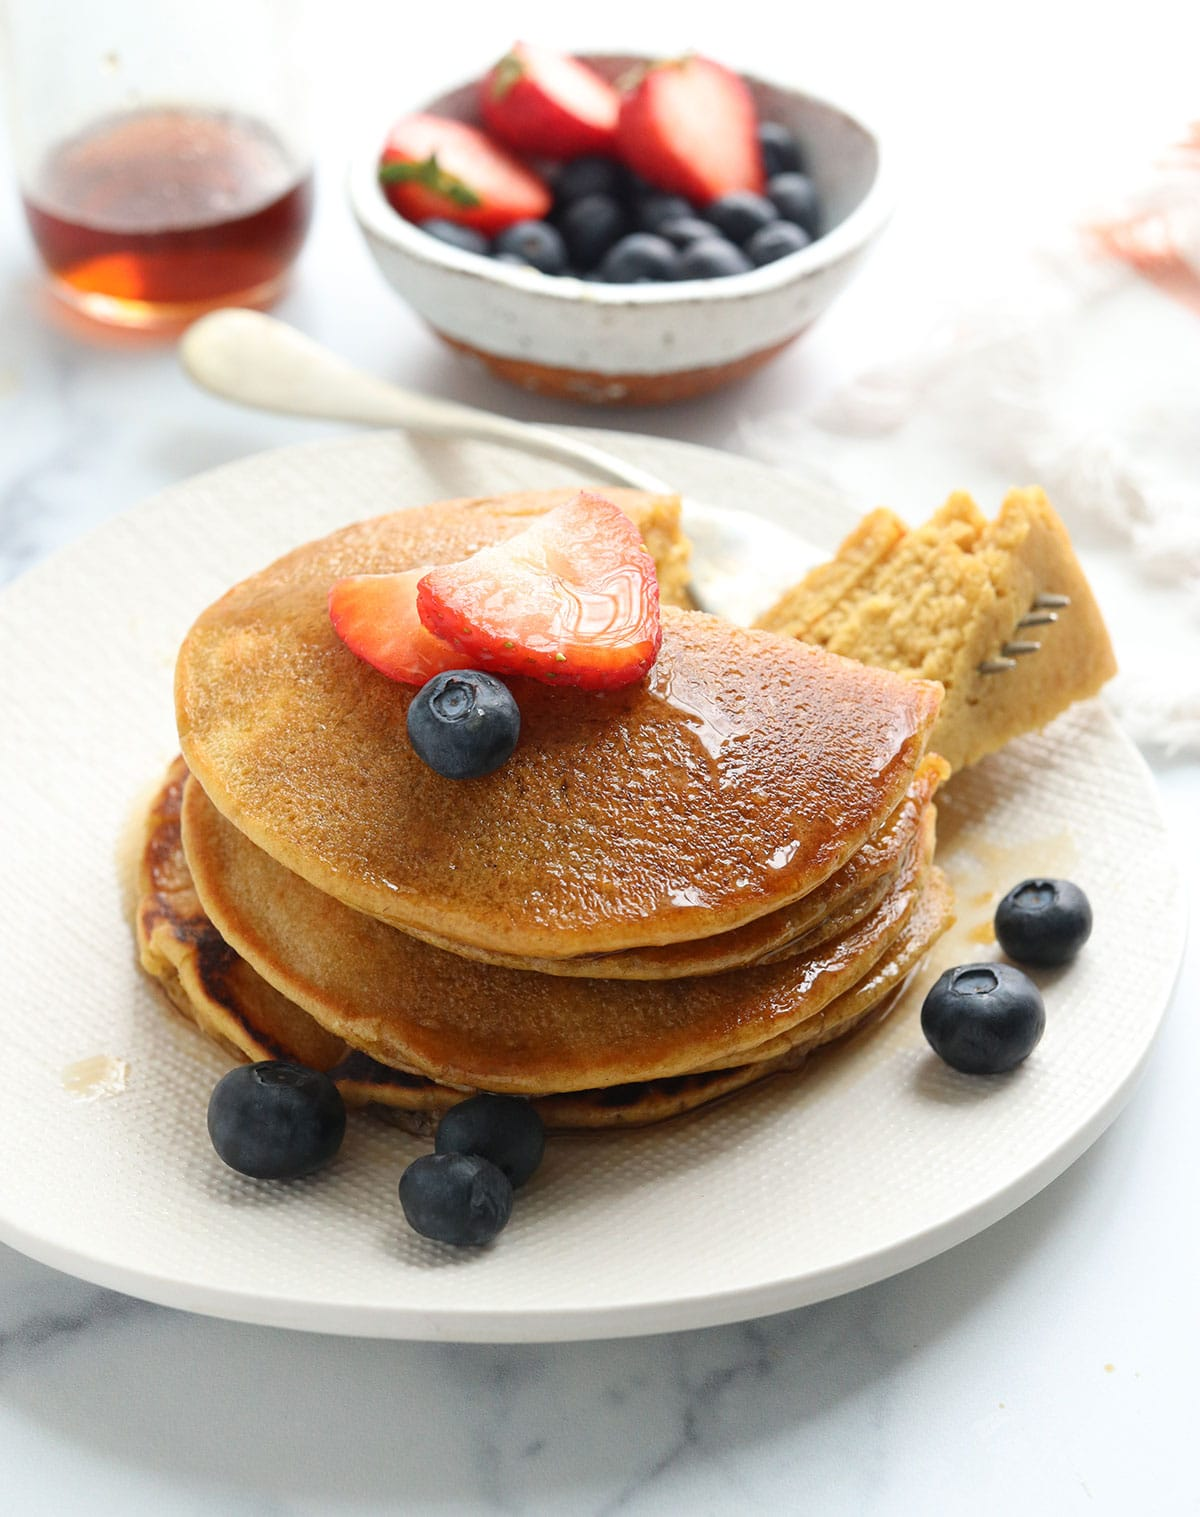 oat flour pancakes with fruit on top